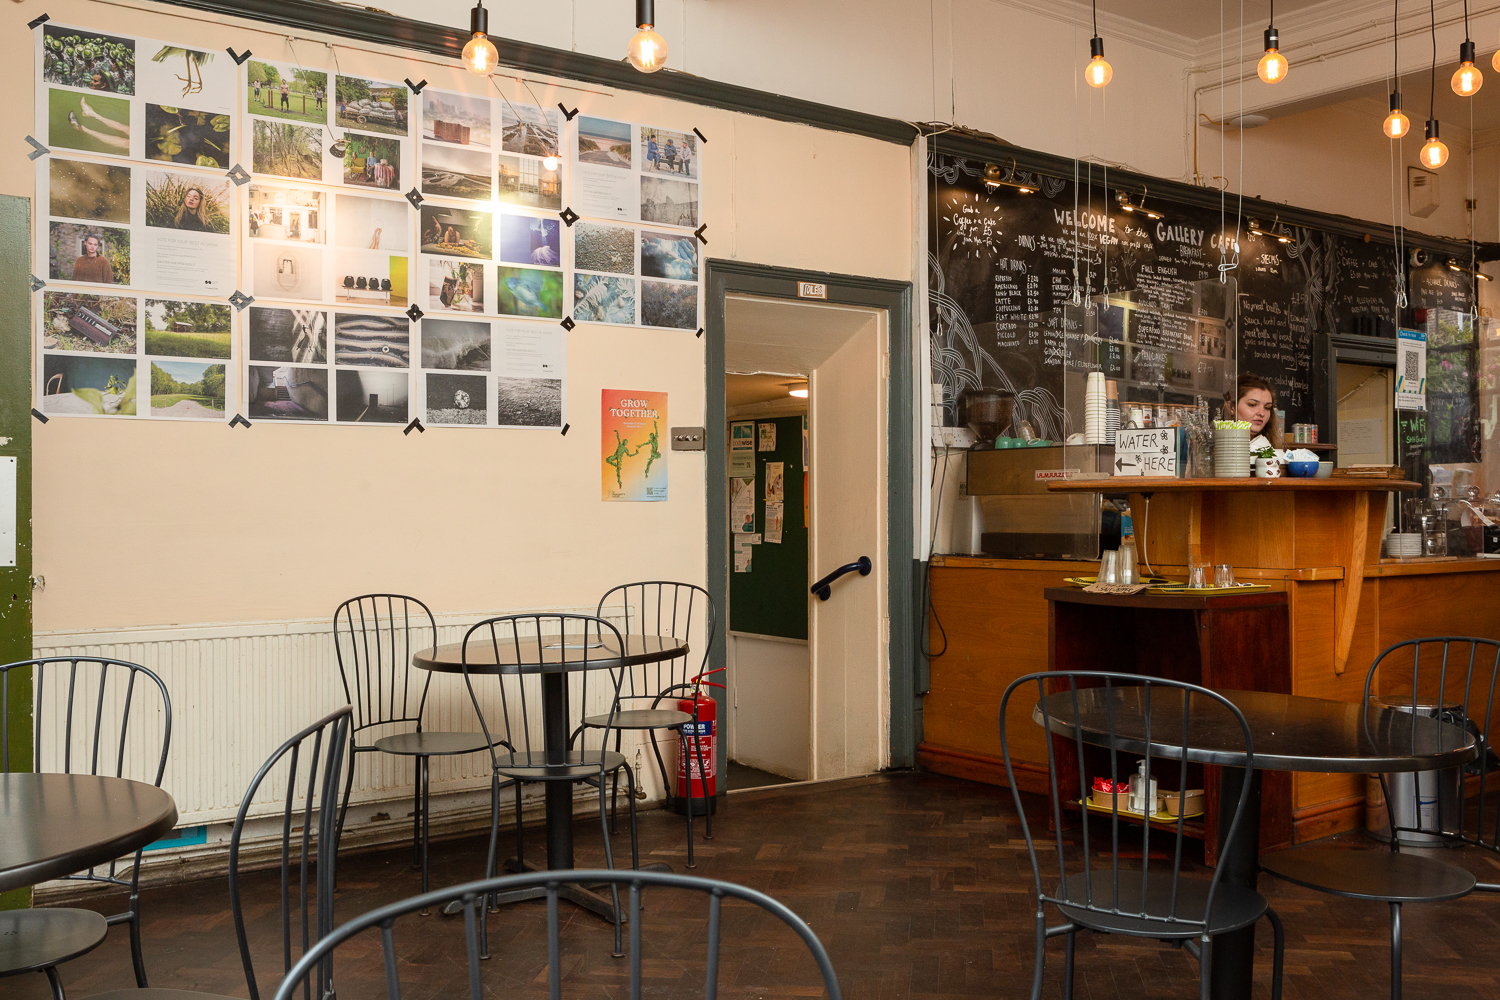 Photograph in the Gallery Café at St. Margaret's House, showing an exhibition of photographs printed on newsprint, tables and chairs in the foreground, and the café counter to the right.